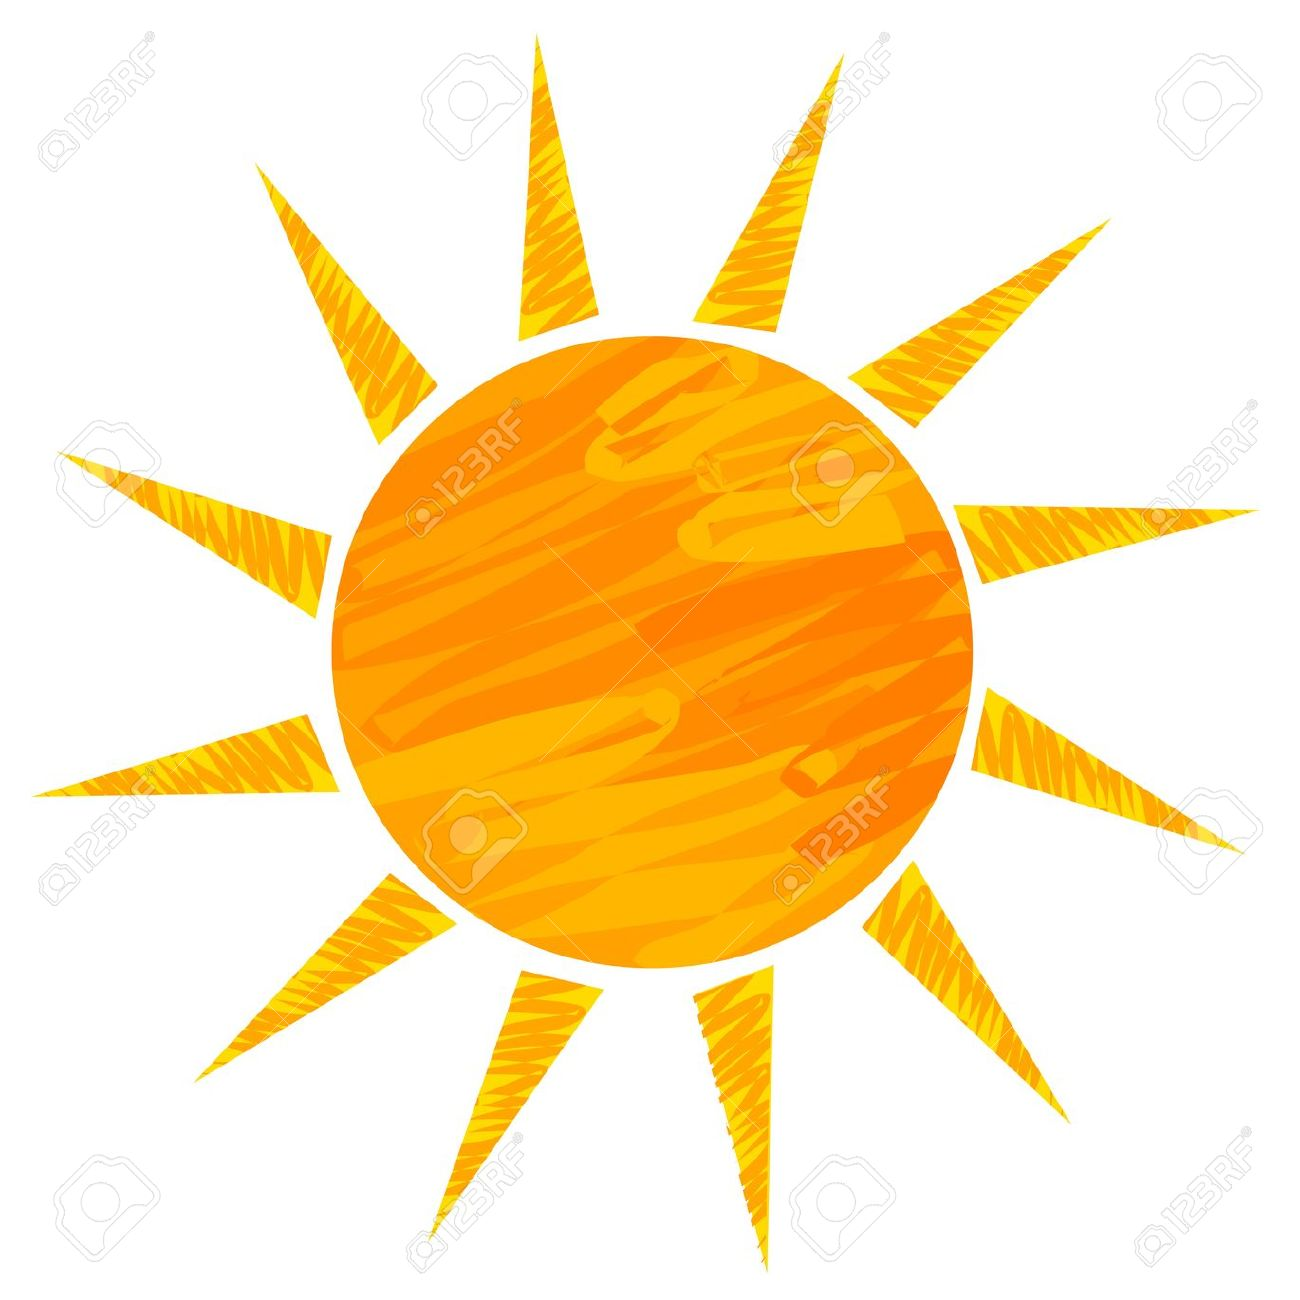 1300x1300 15027388 Sun Drawing Vector Illustration Stock Vector Sun Sunshine